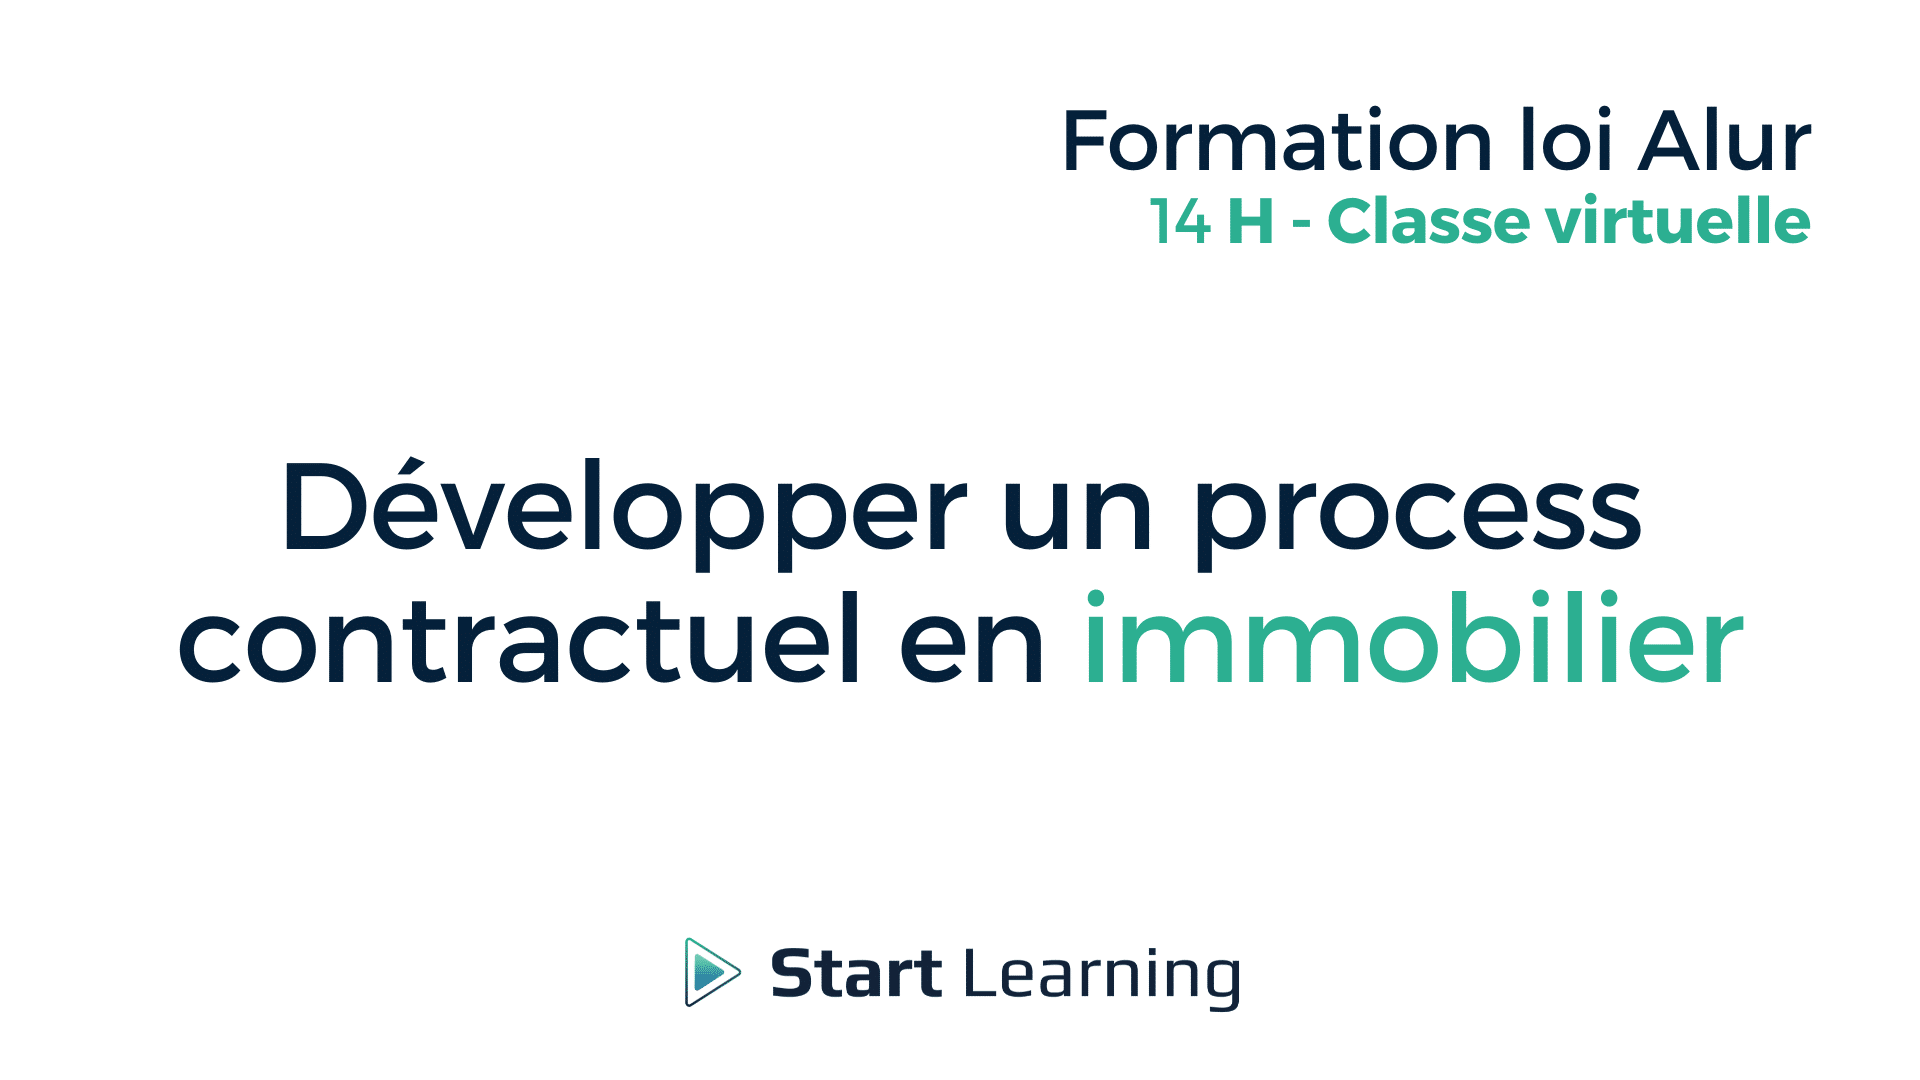 Formation loi Alur Classe Virtuelle - Développer un process contractuel en immobilier